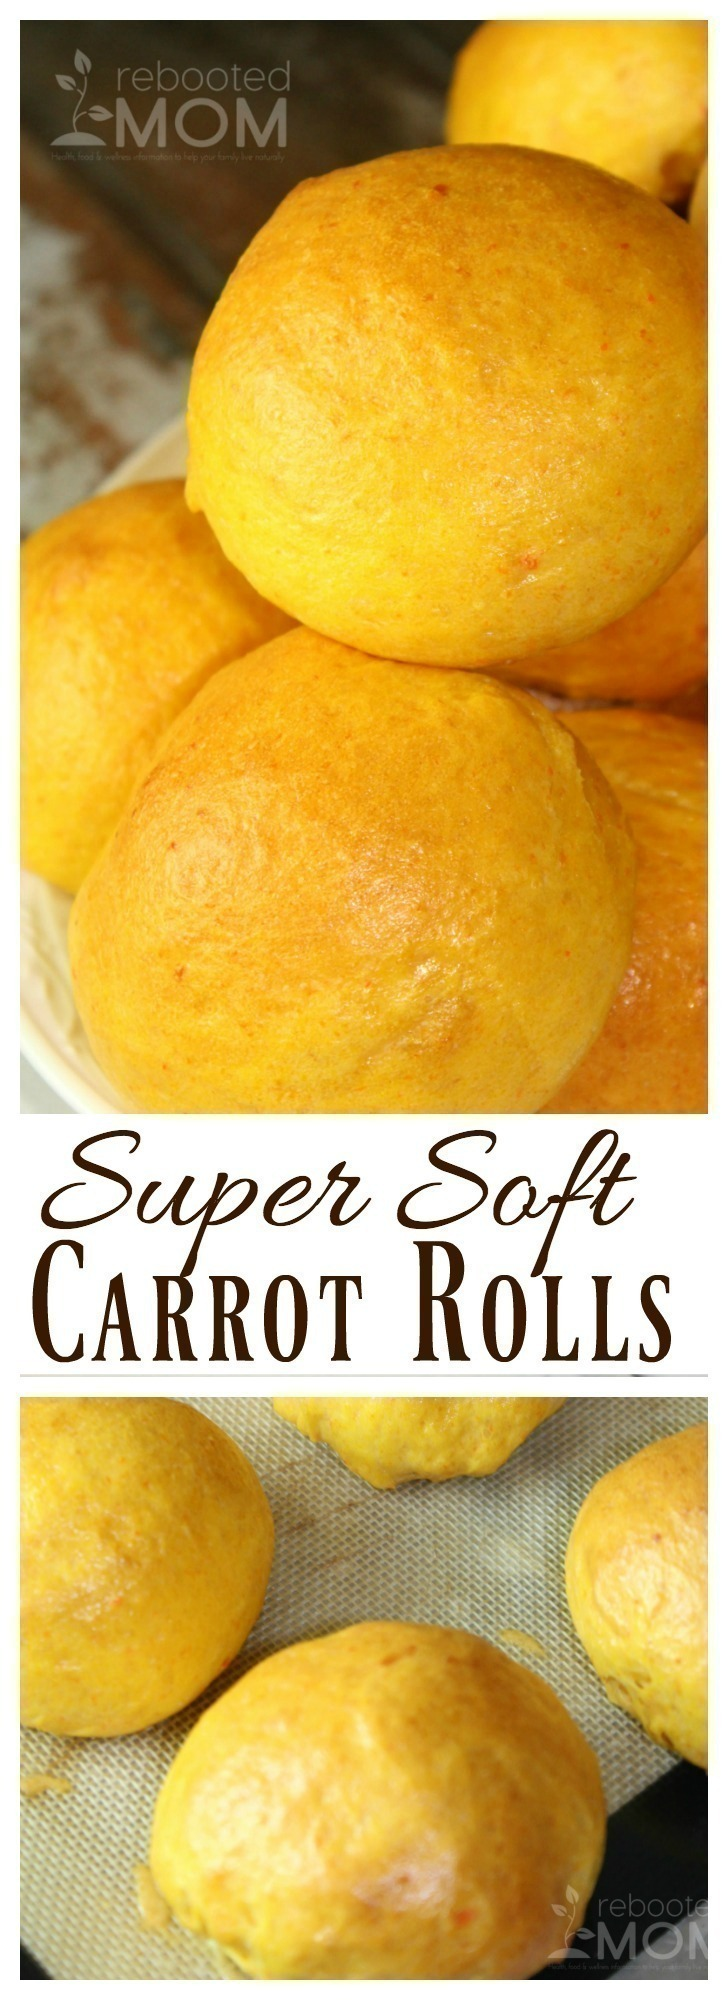 Super Soft Carrot Rolls